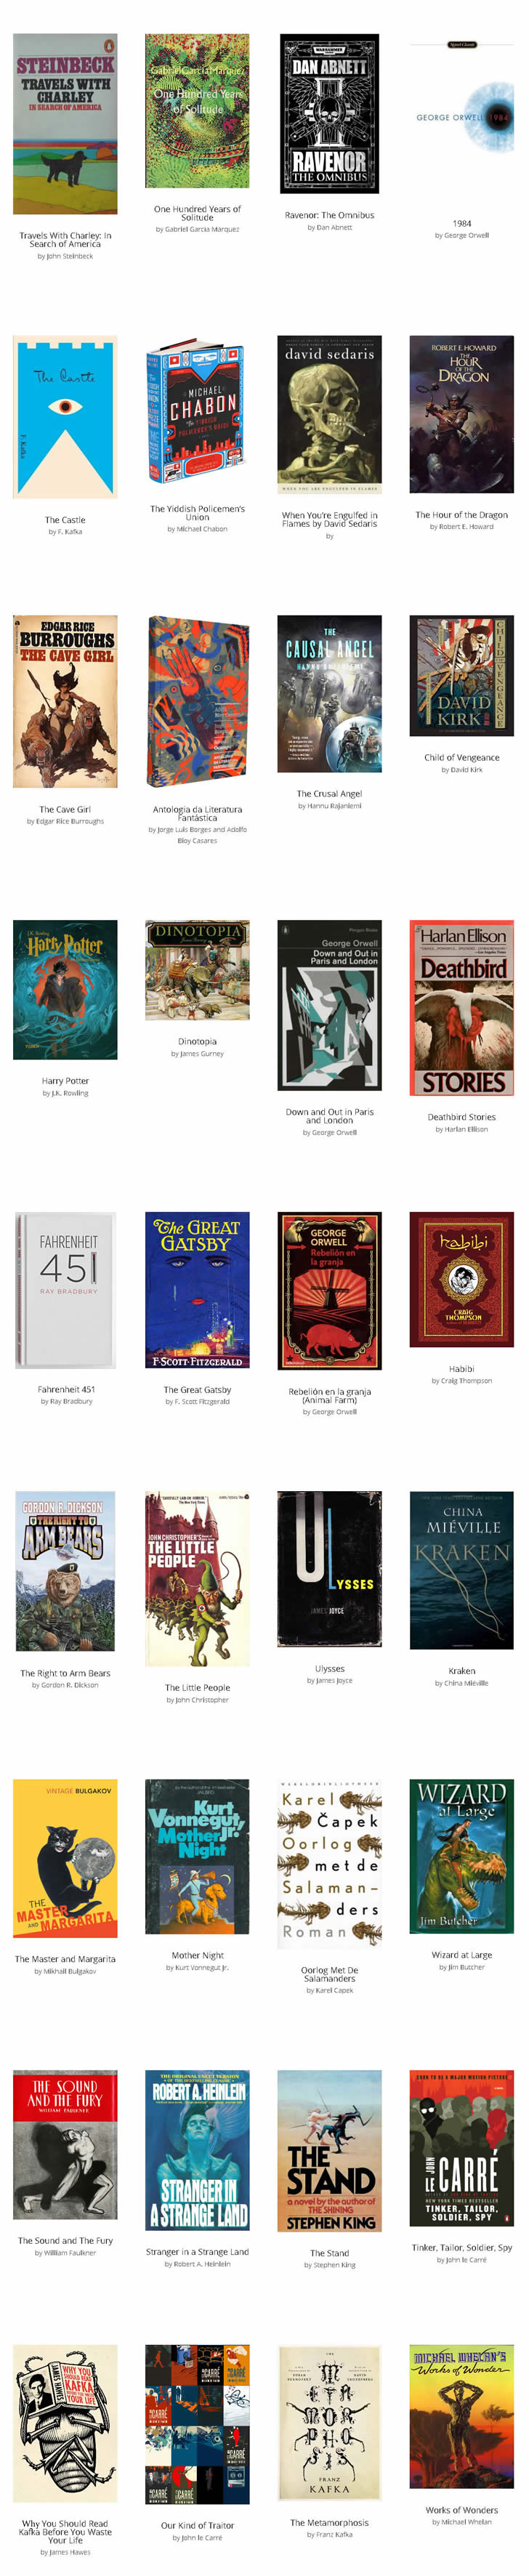 36 Best Book Covers